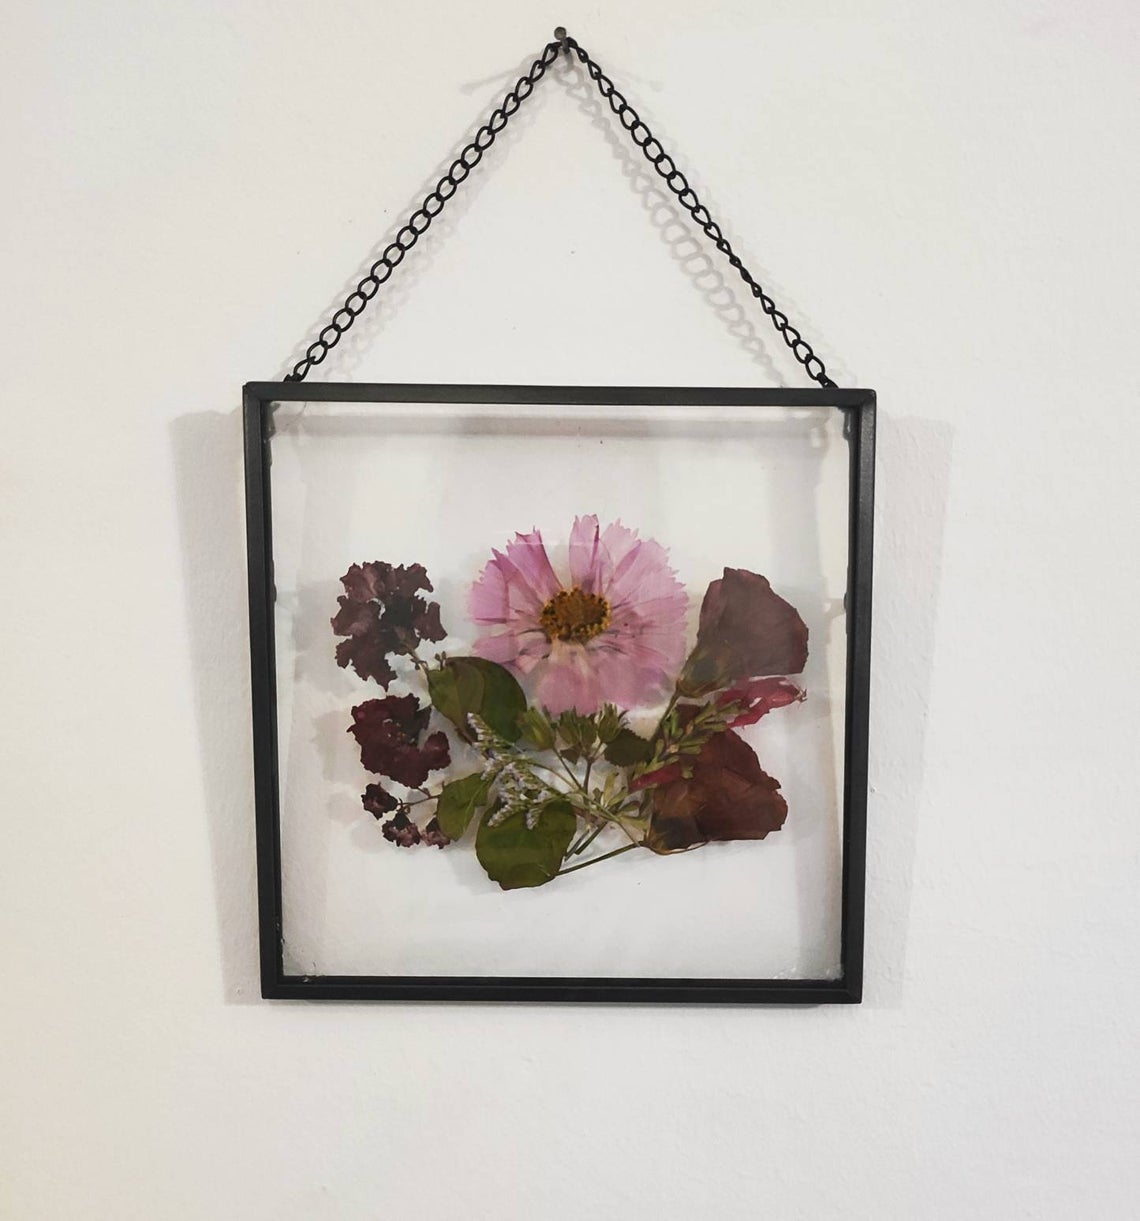 Pink pressed flowers in a floating brass frame